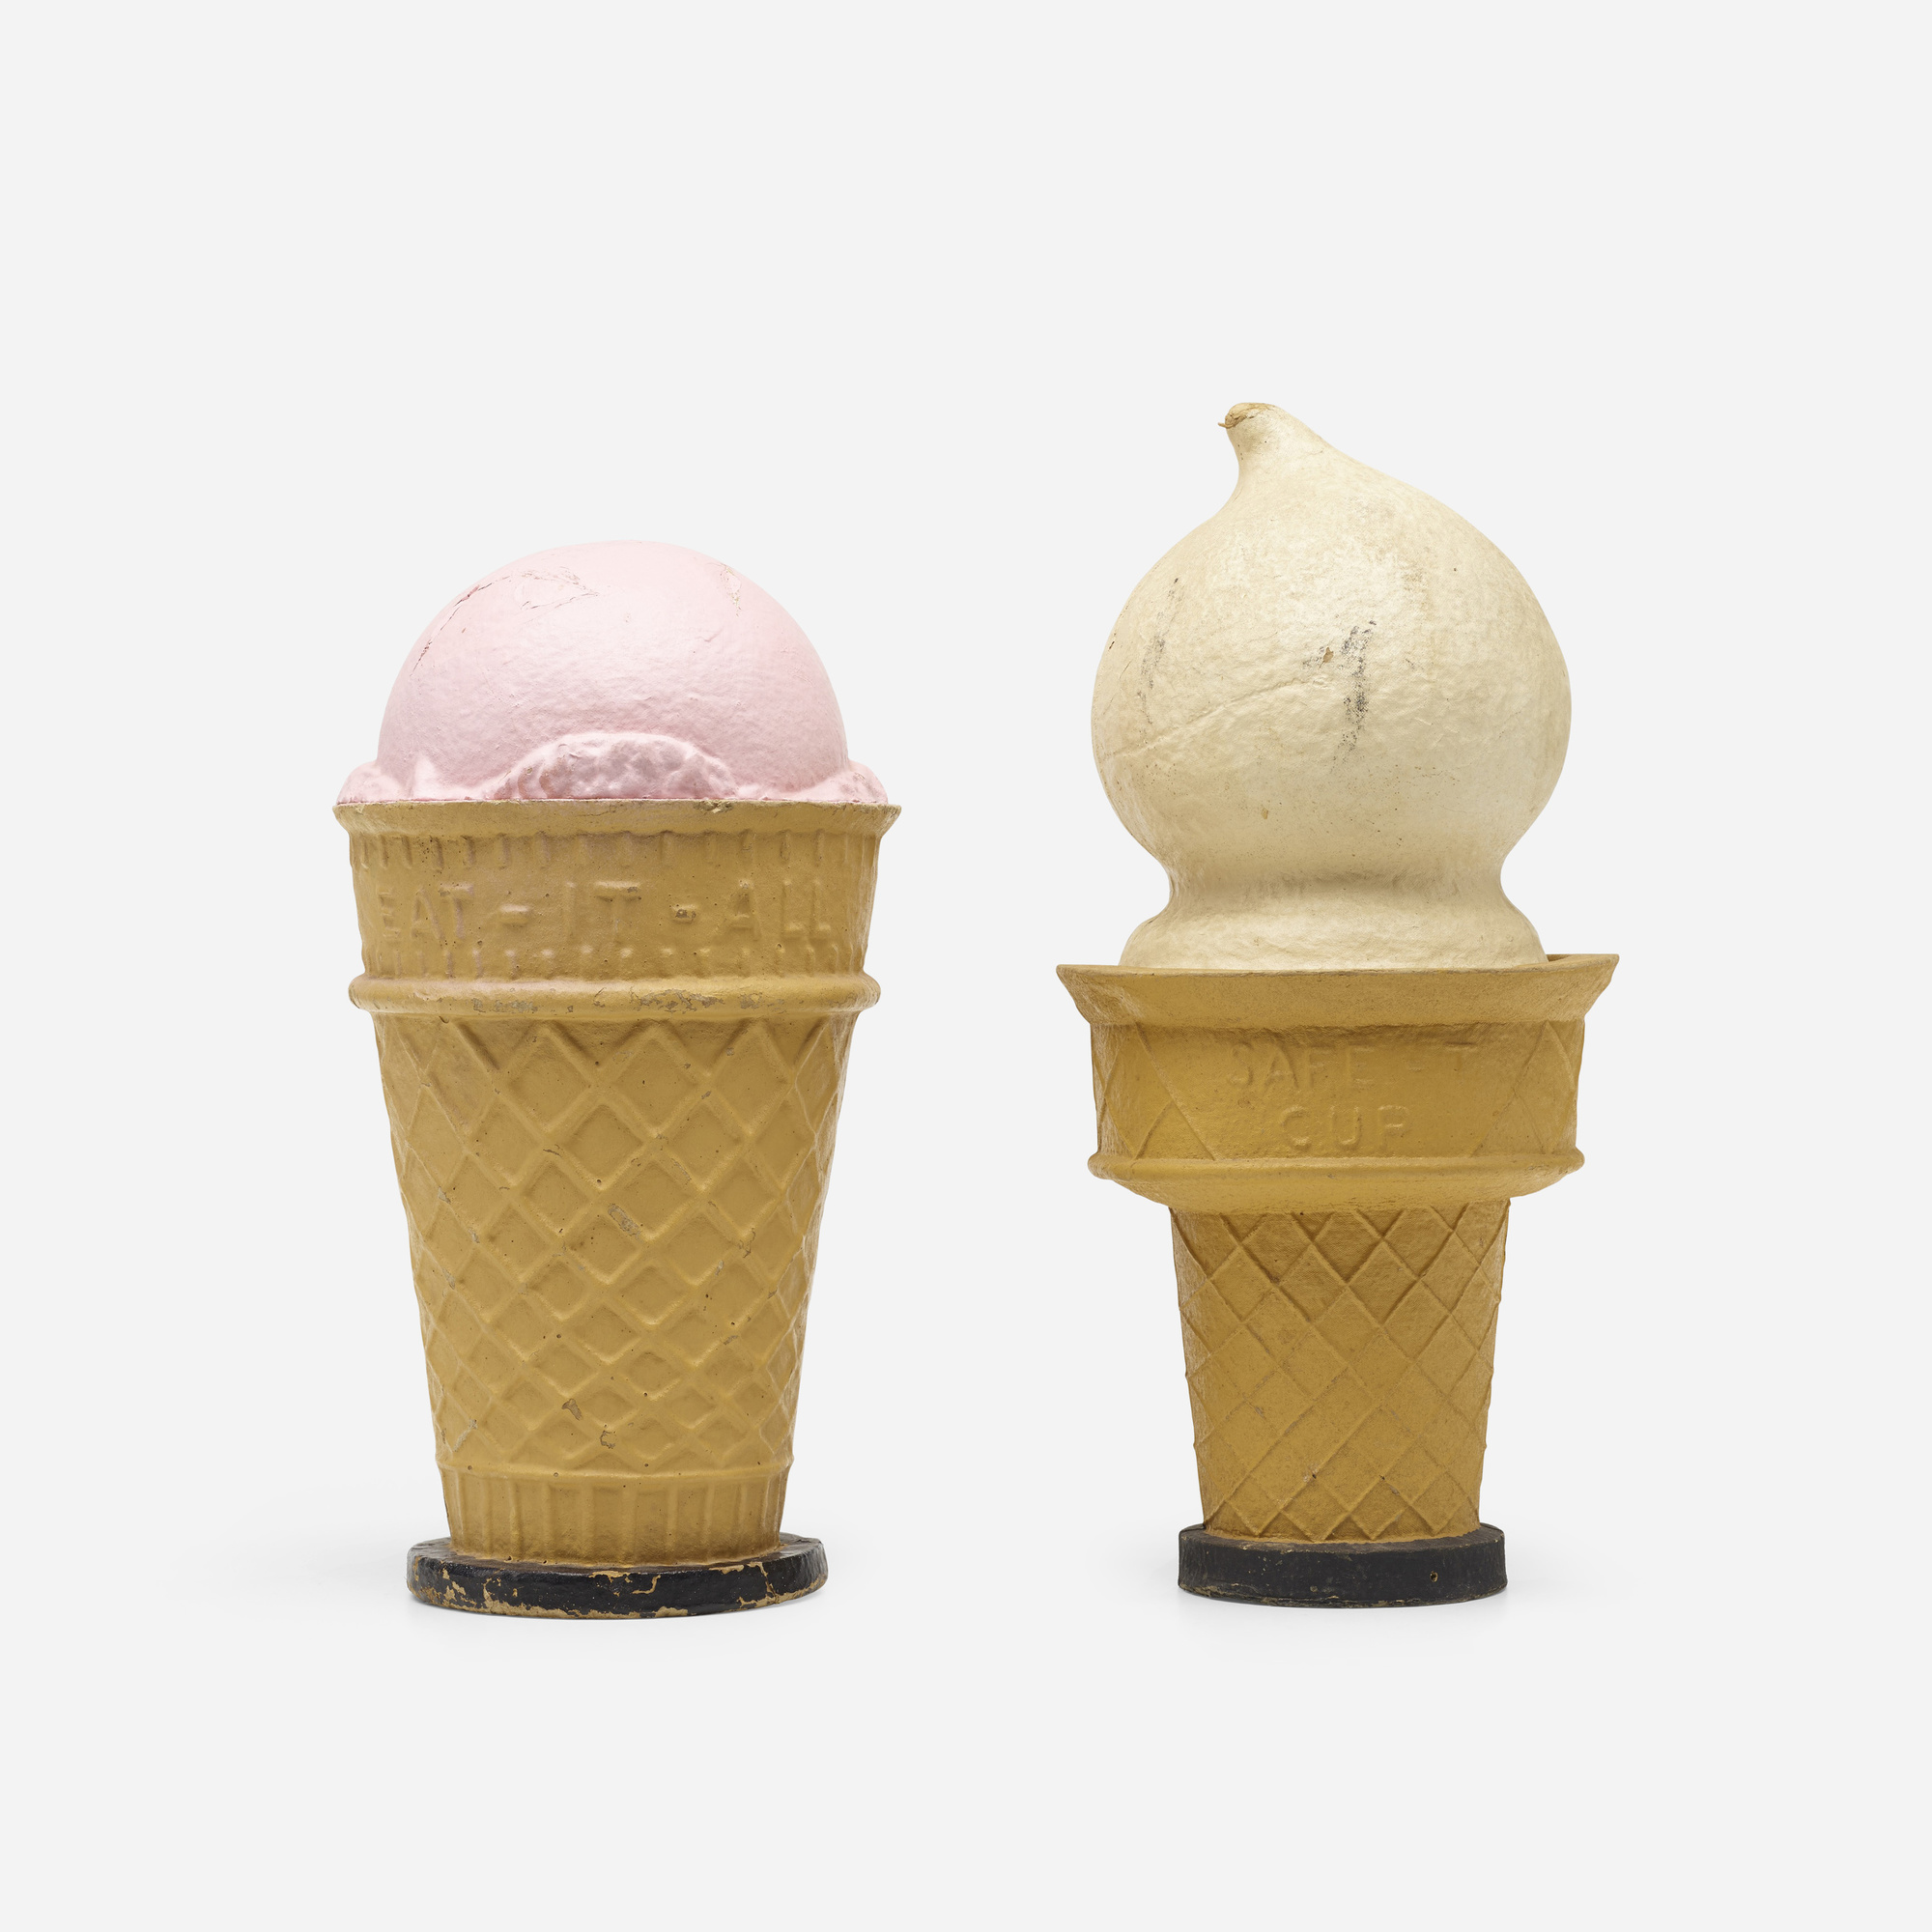 260: American / monumental ice cream cone displays, set of two (1 of 2)